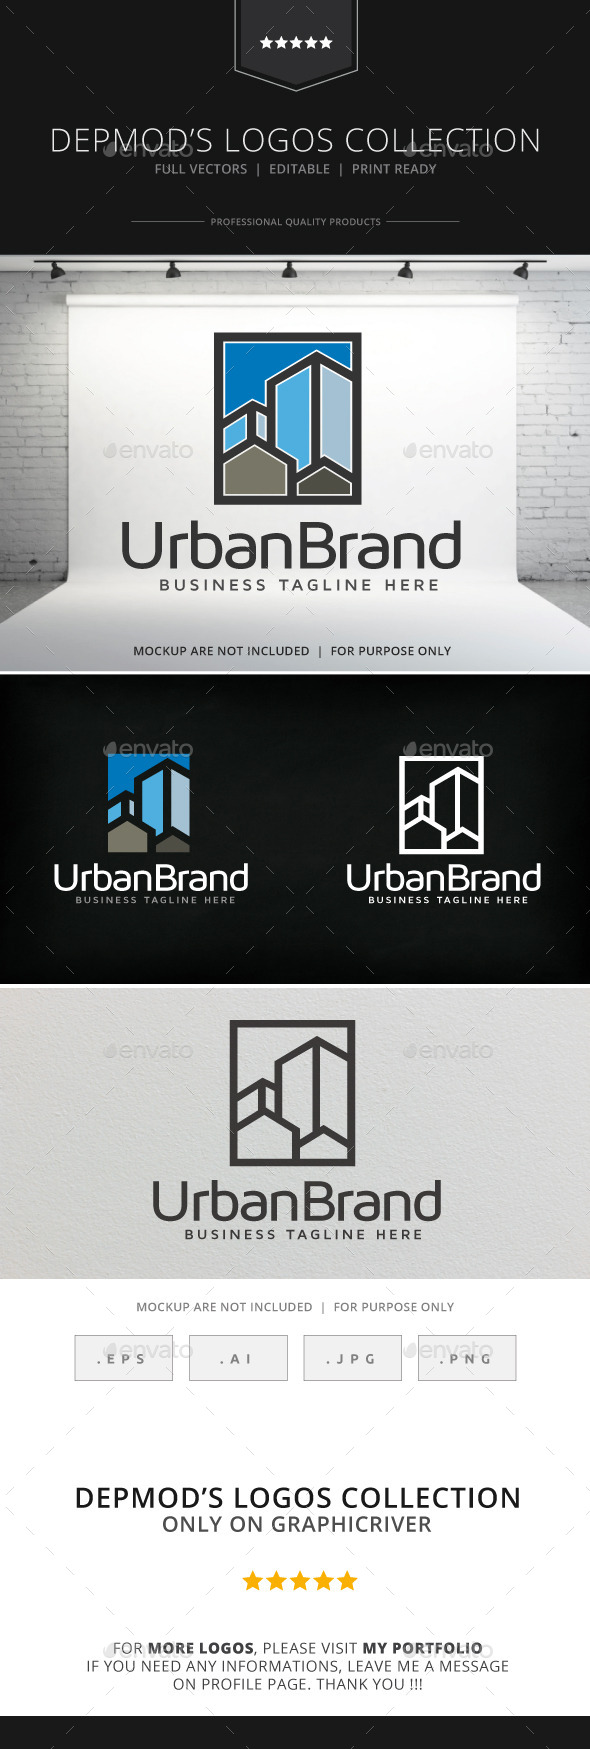 GraphicRiver Urban Brand Logo 9155845